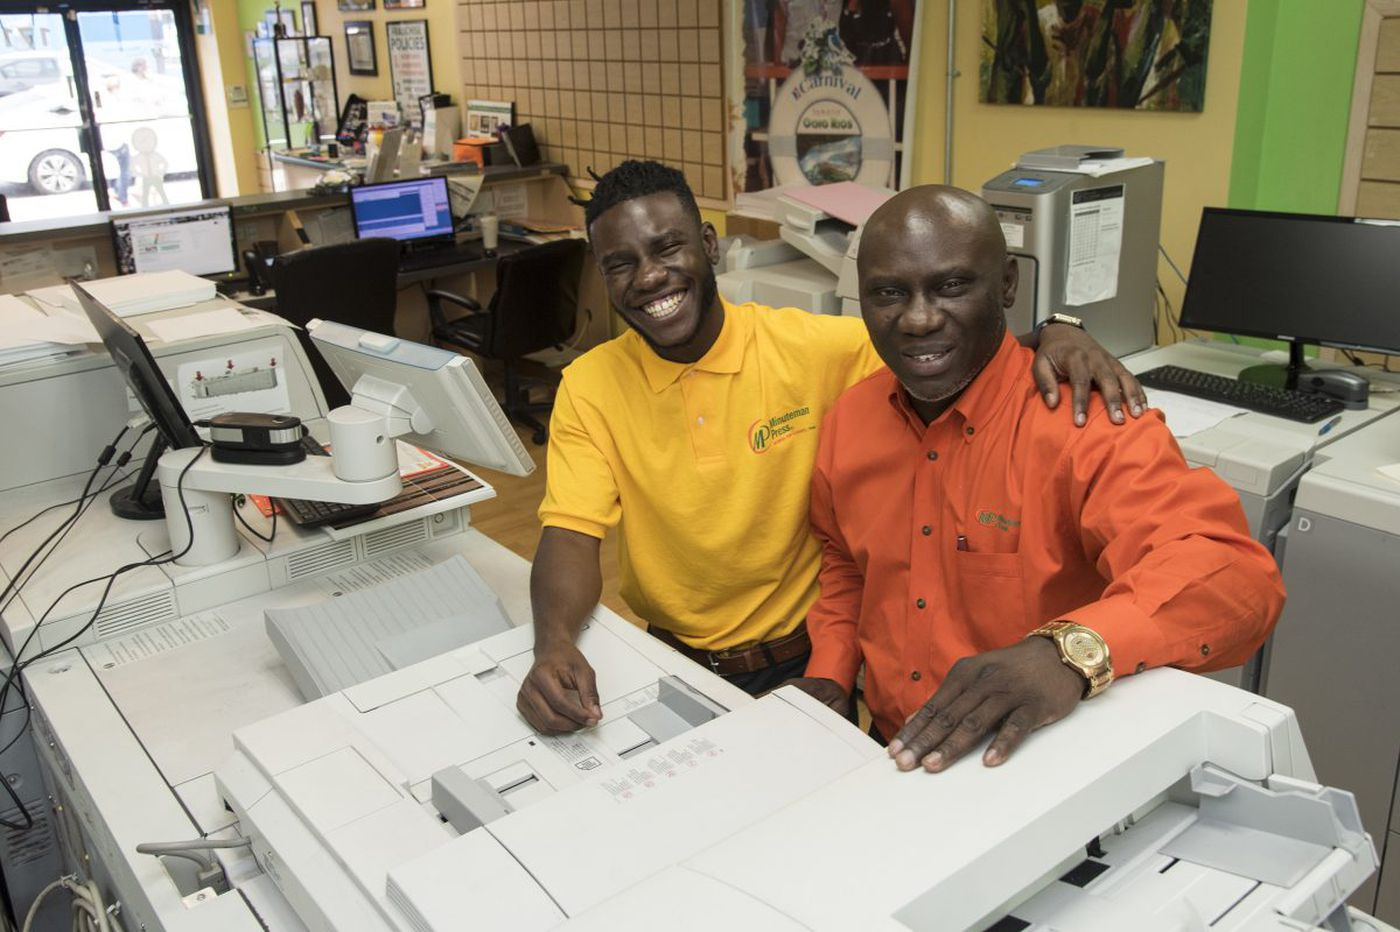 Want to groom a successor? This Philly print-shop entrepreneur found one in the family